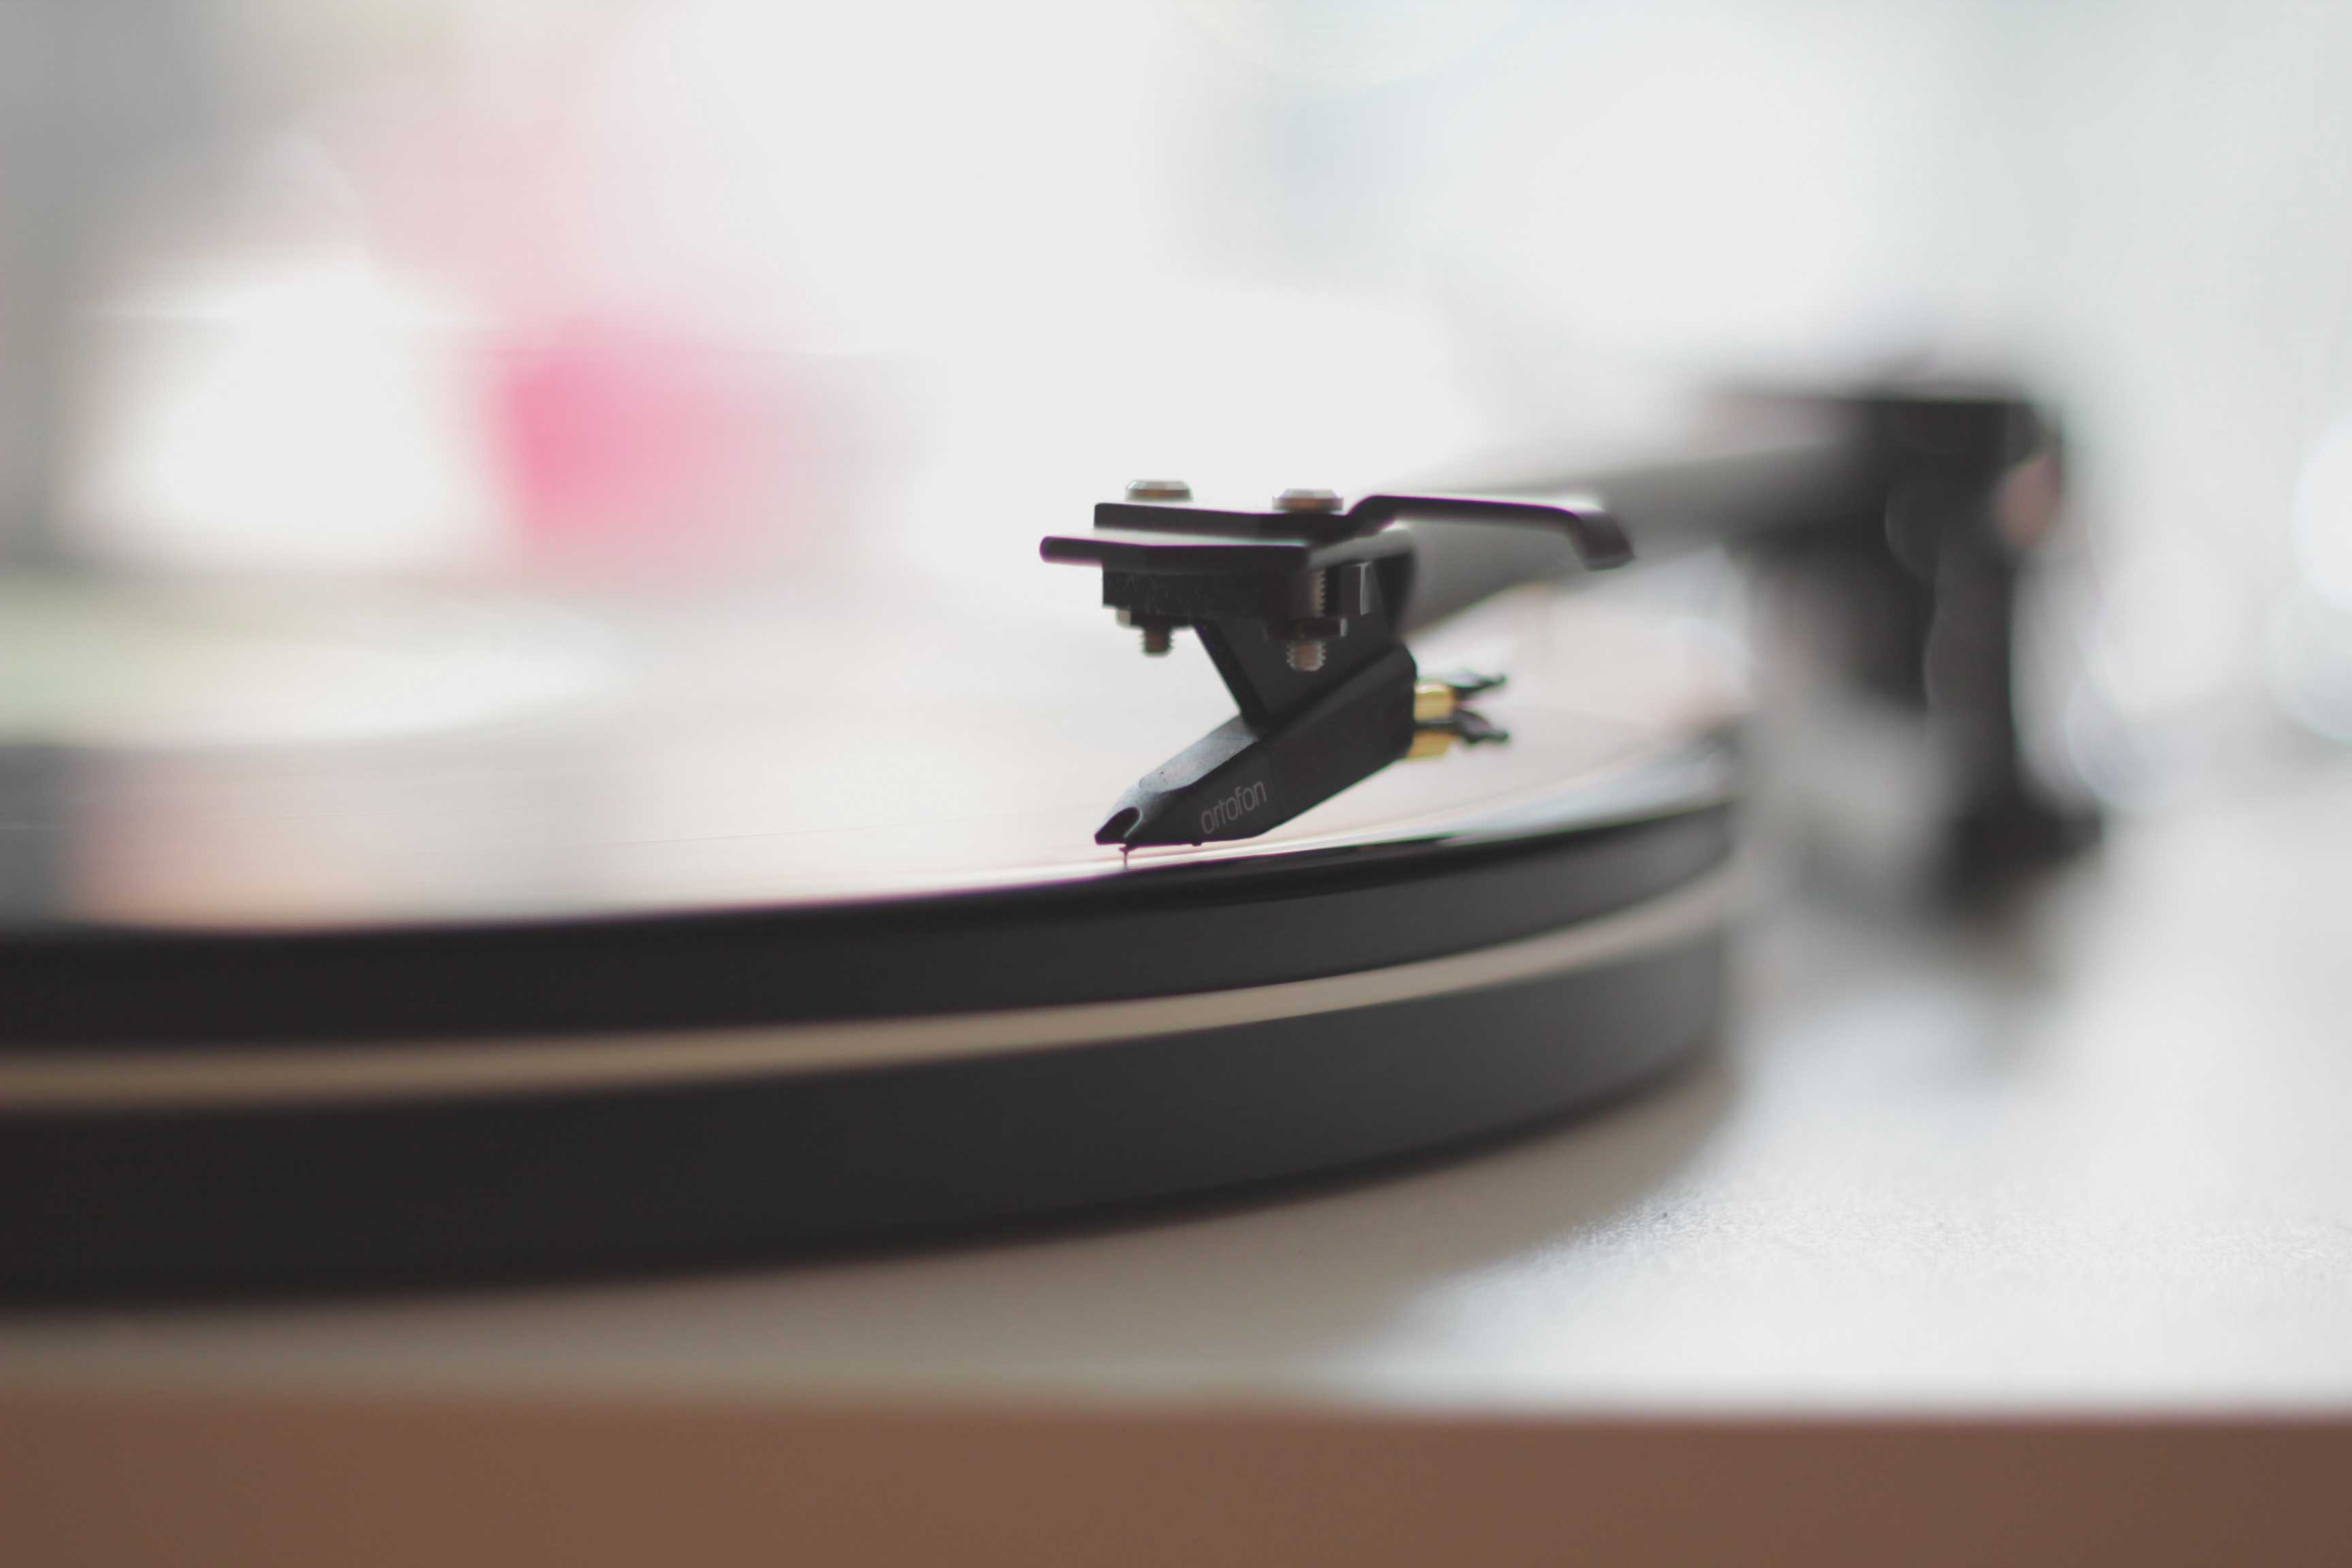 How To Replace A Turntable Needle